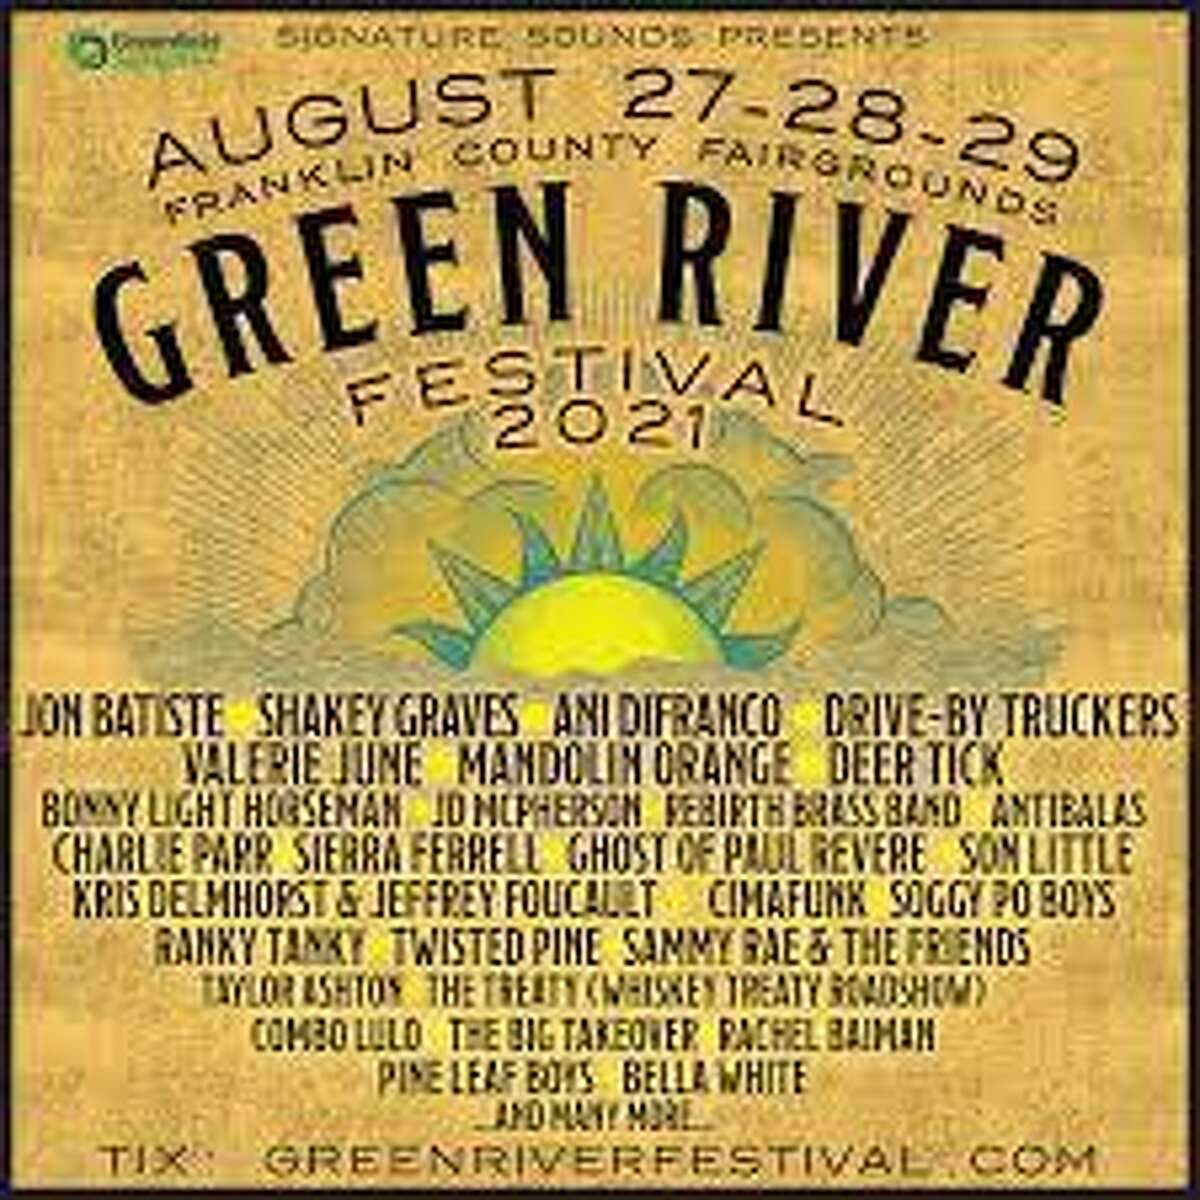 The Green River Festival is Western Massachusetts' signature summer event.